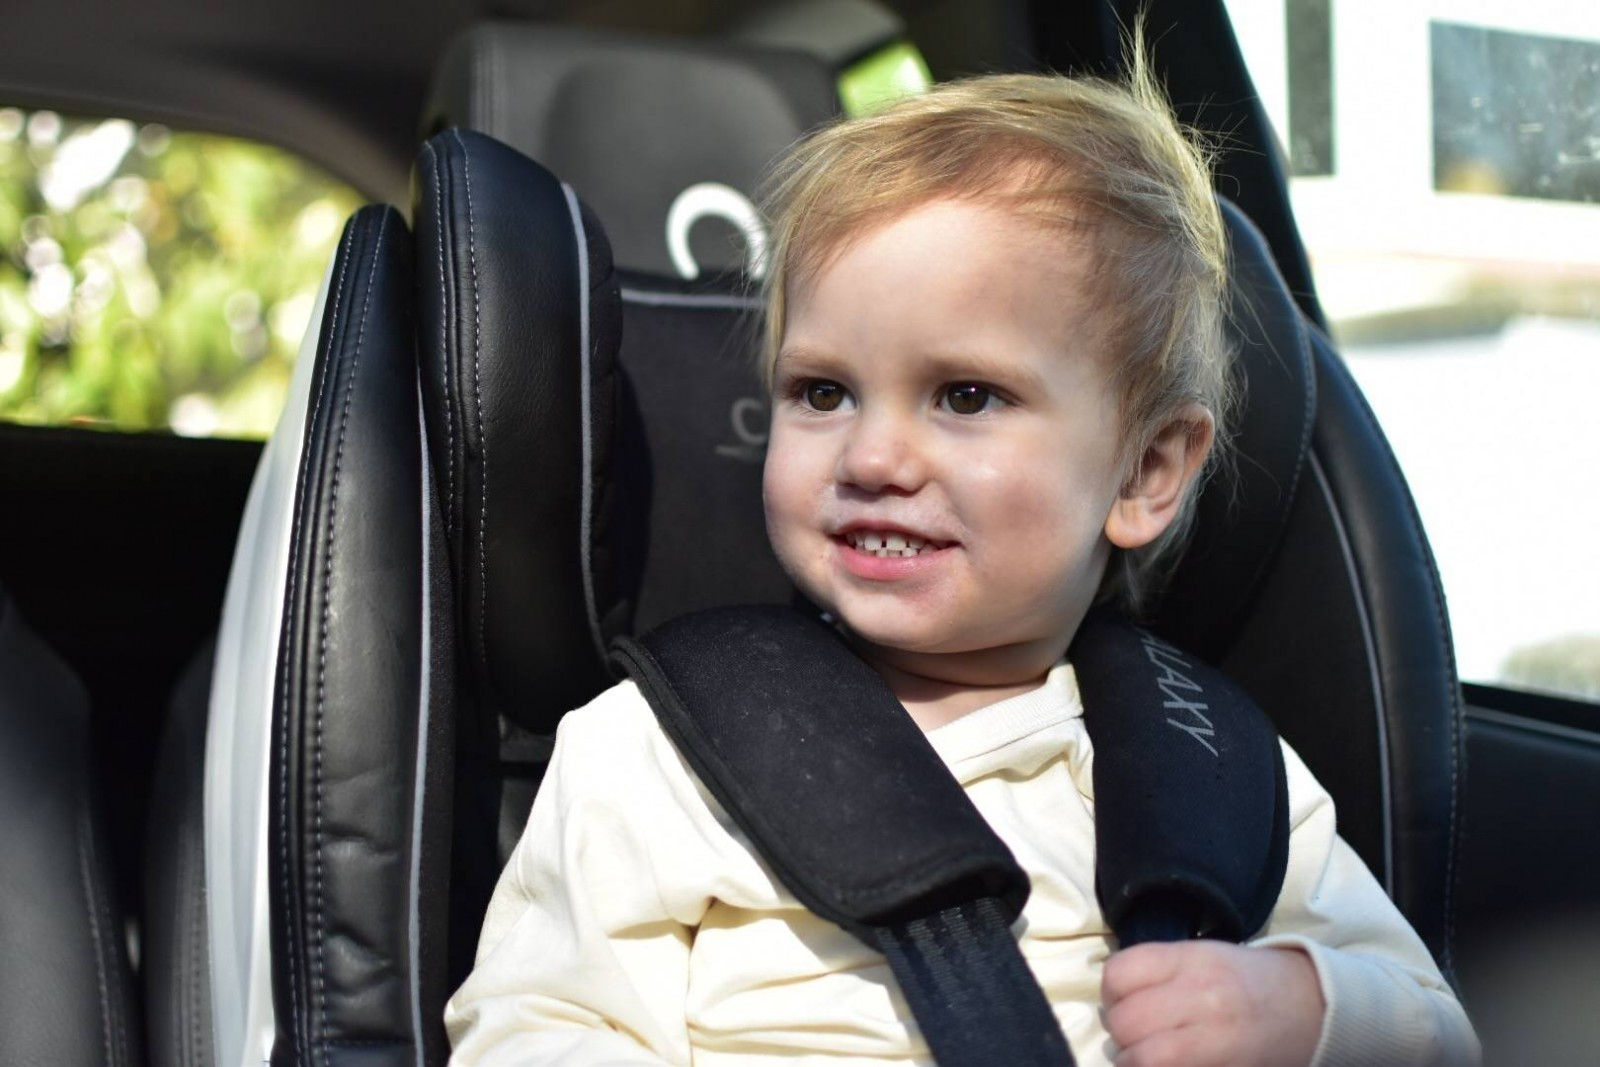 there's so much to consider when travelling safely with your children in the car. heres the latest changes in car seat law